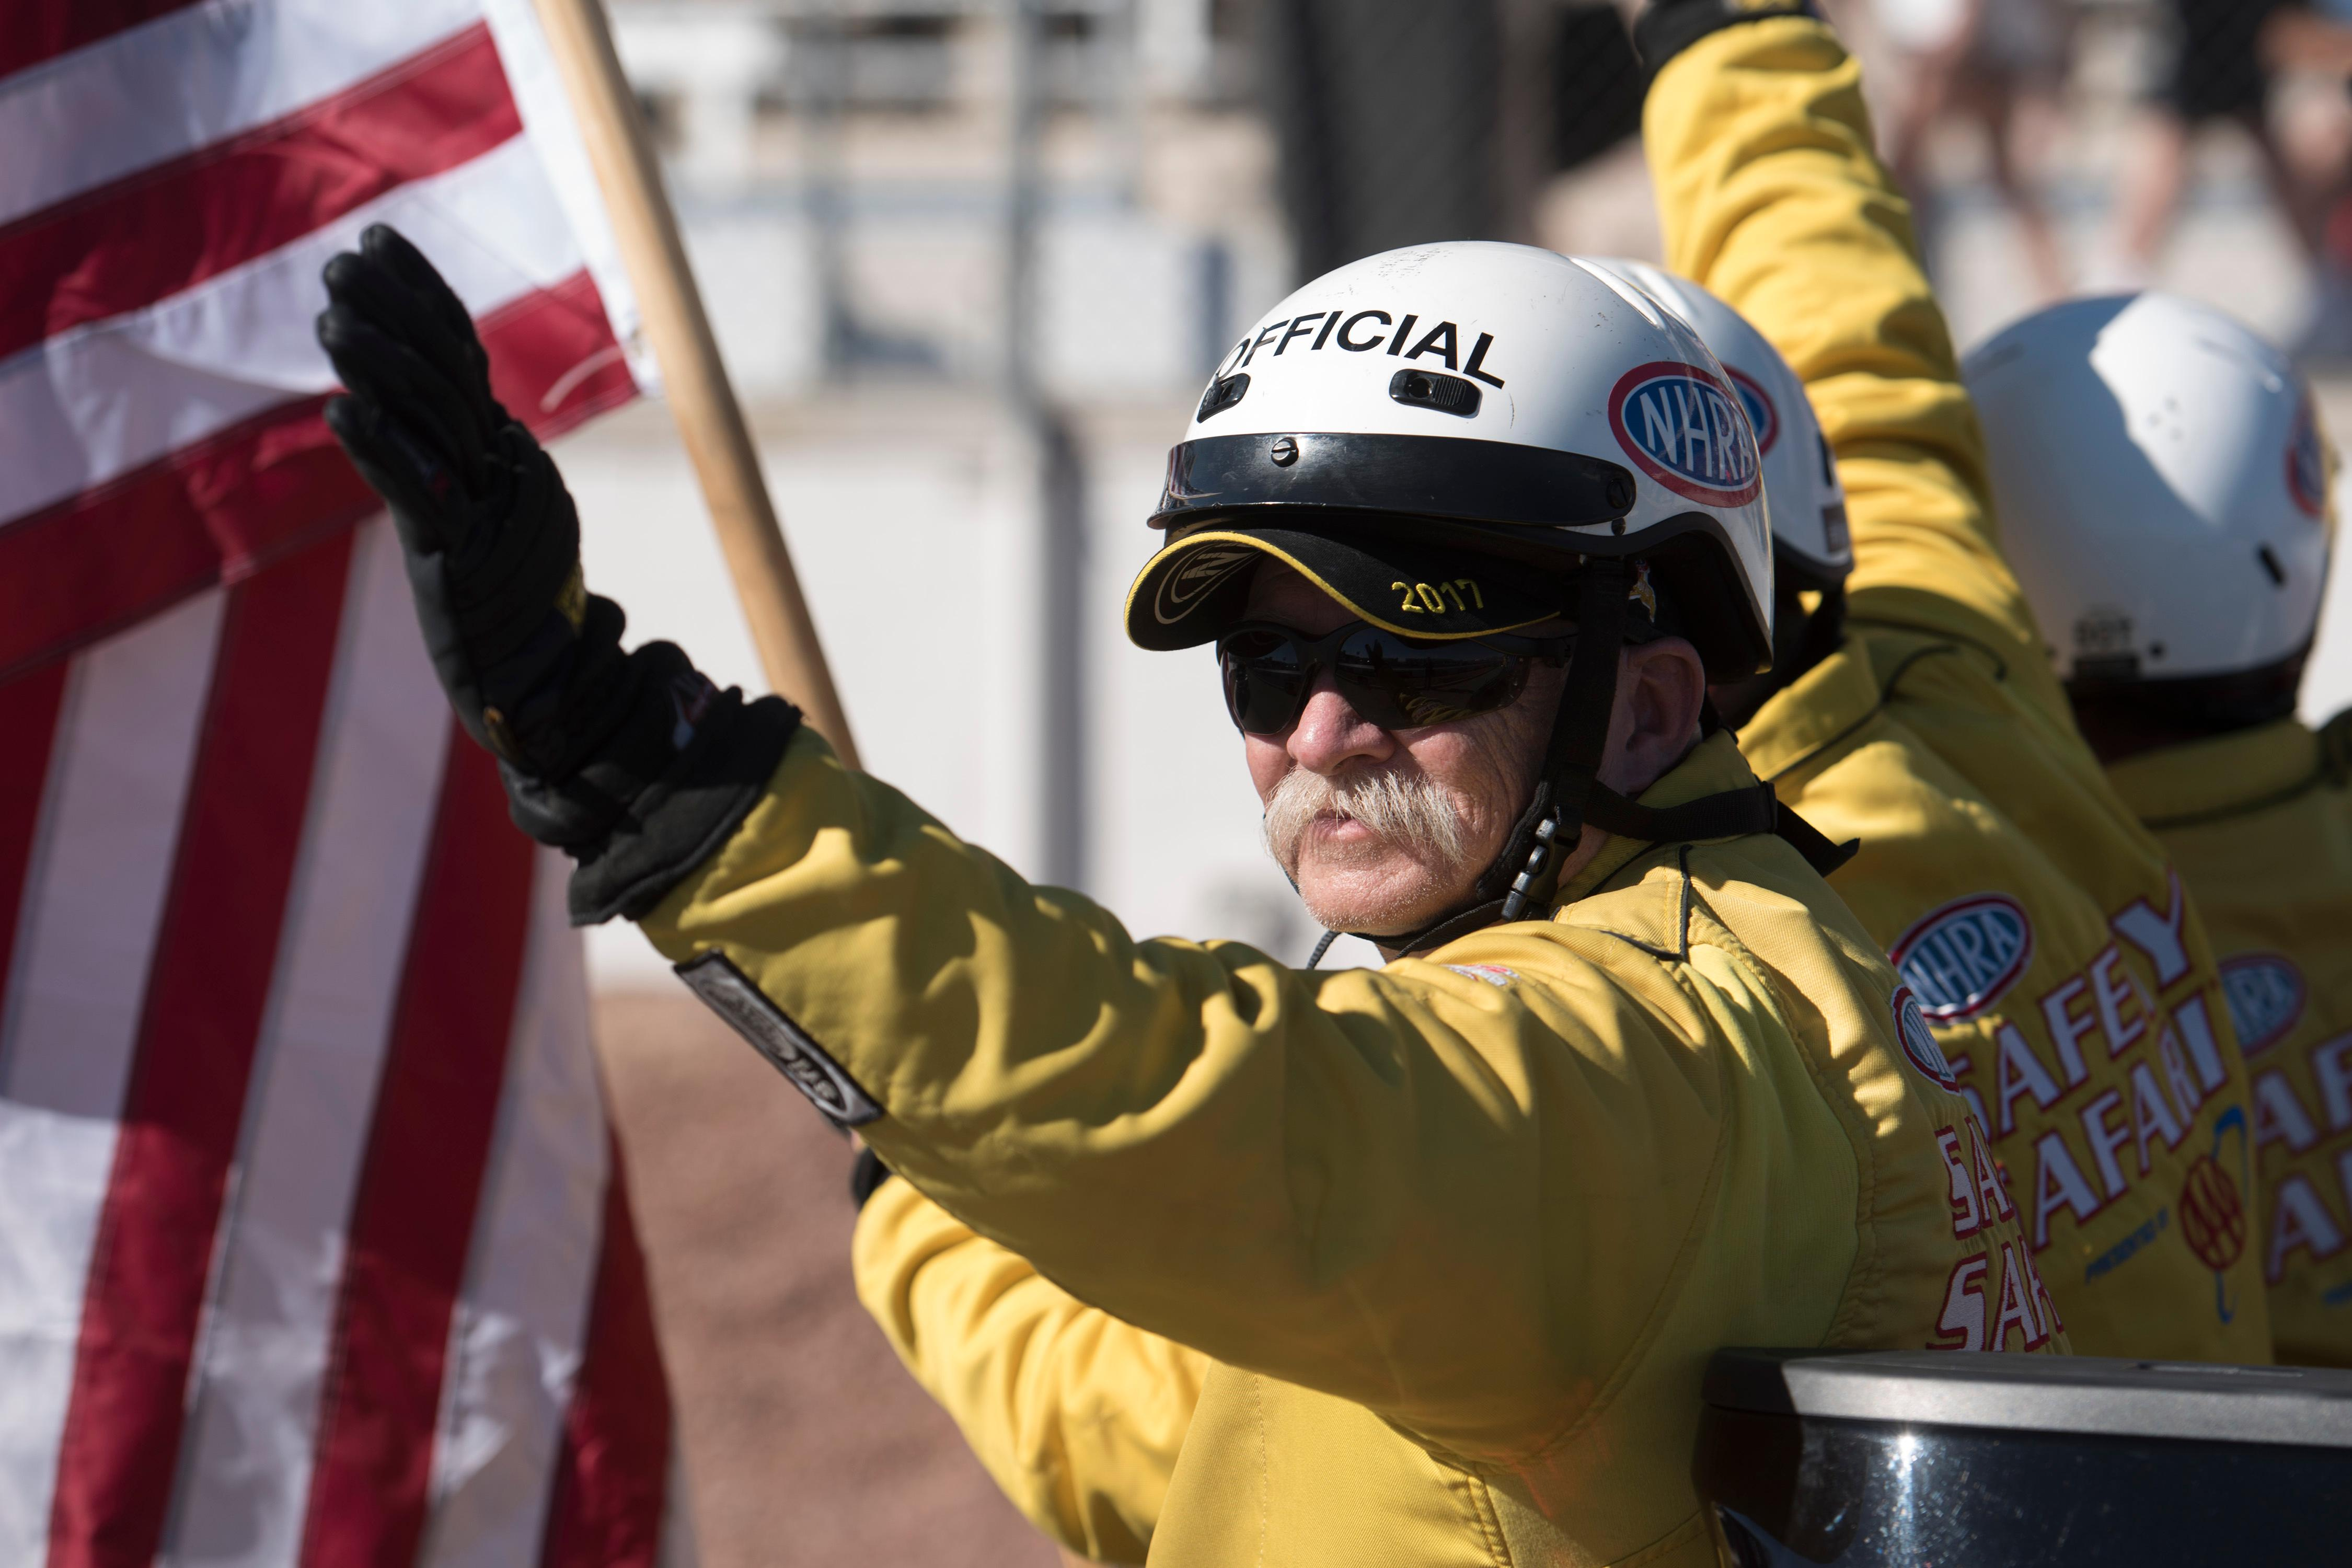 A safety official waves to the crowd at the NHRA Toyota Nationals Sunday, October 29, 2017, at The Strip at the Las Vegas Motor Speedway. CREDIT: Sam Morris/Las Vegas News Bureau